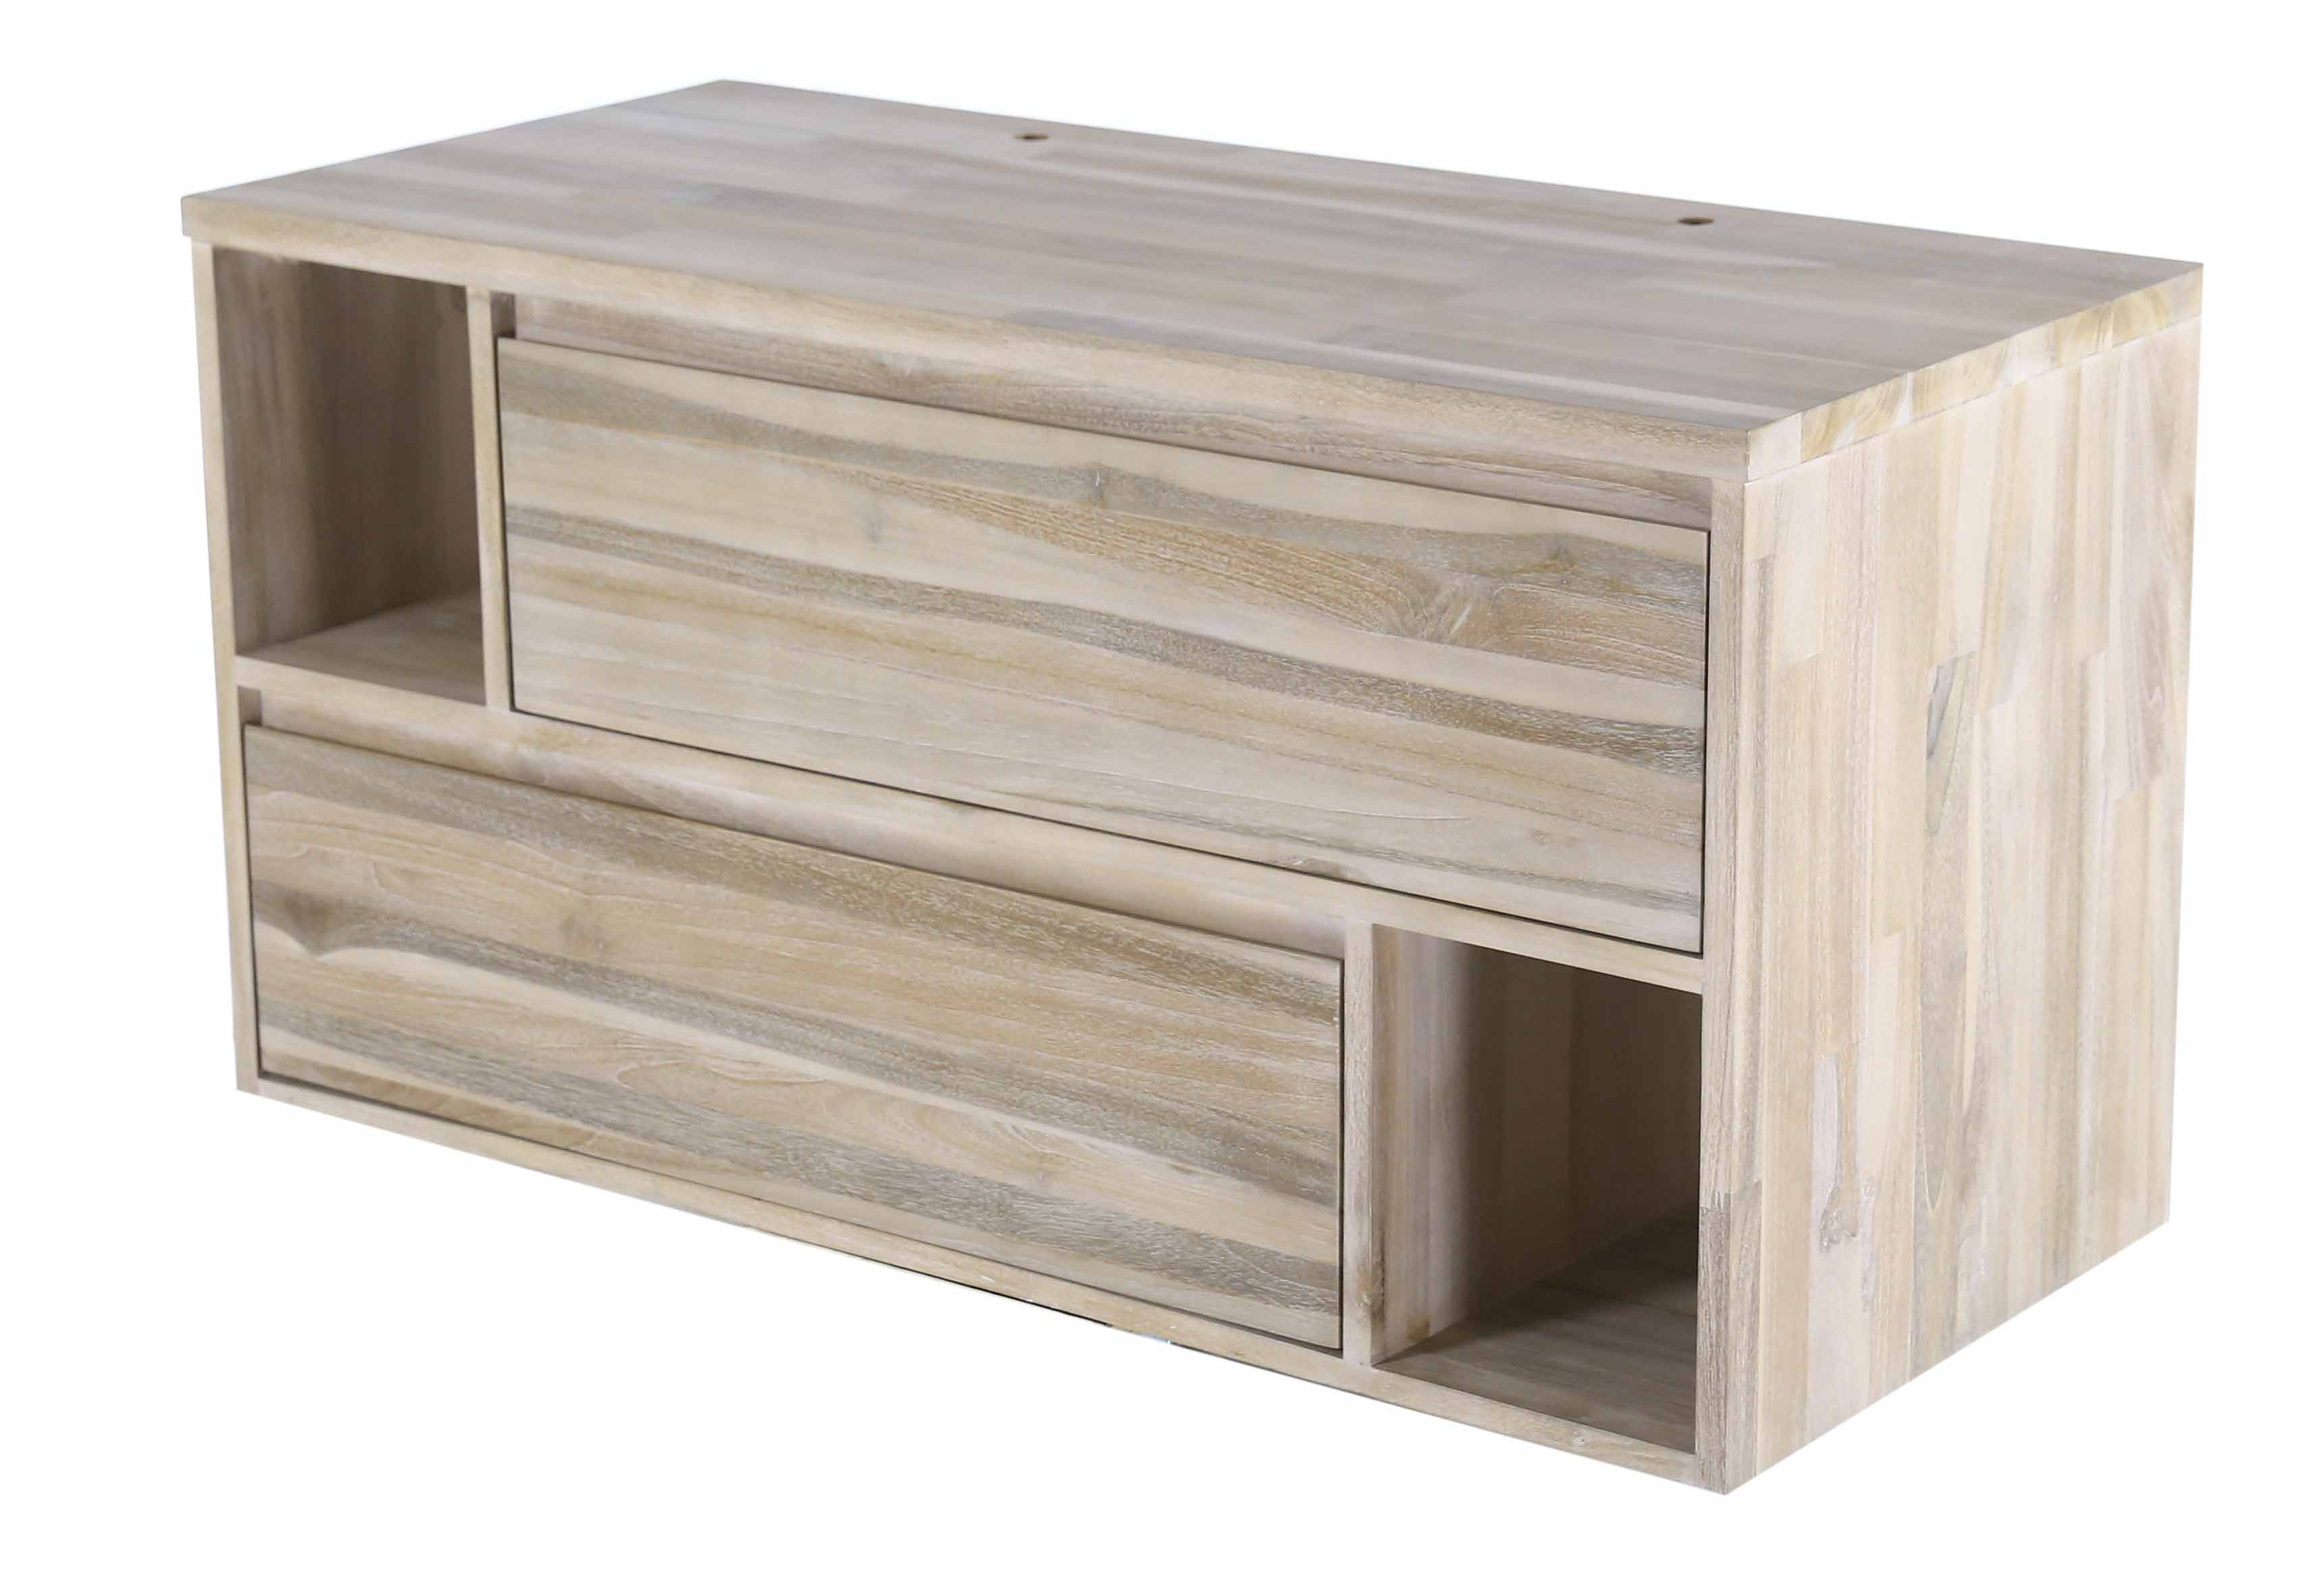 Sejour meuble bas meuble bas 2 tiroirs 2 niches 120 cm for Meuble bureau 120 cm